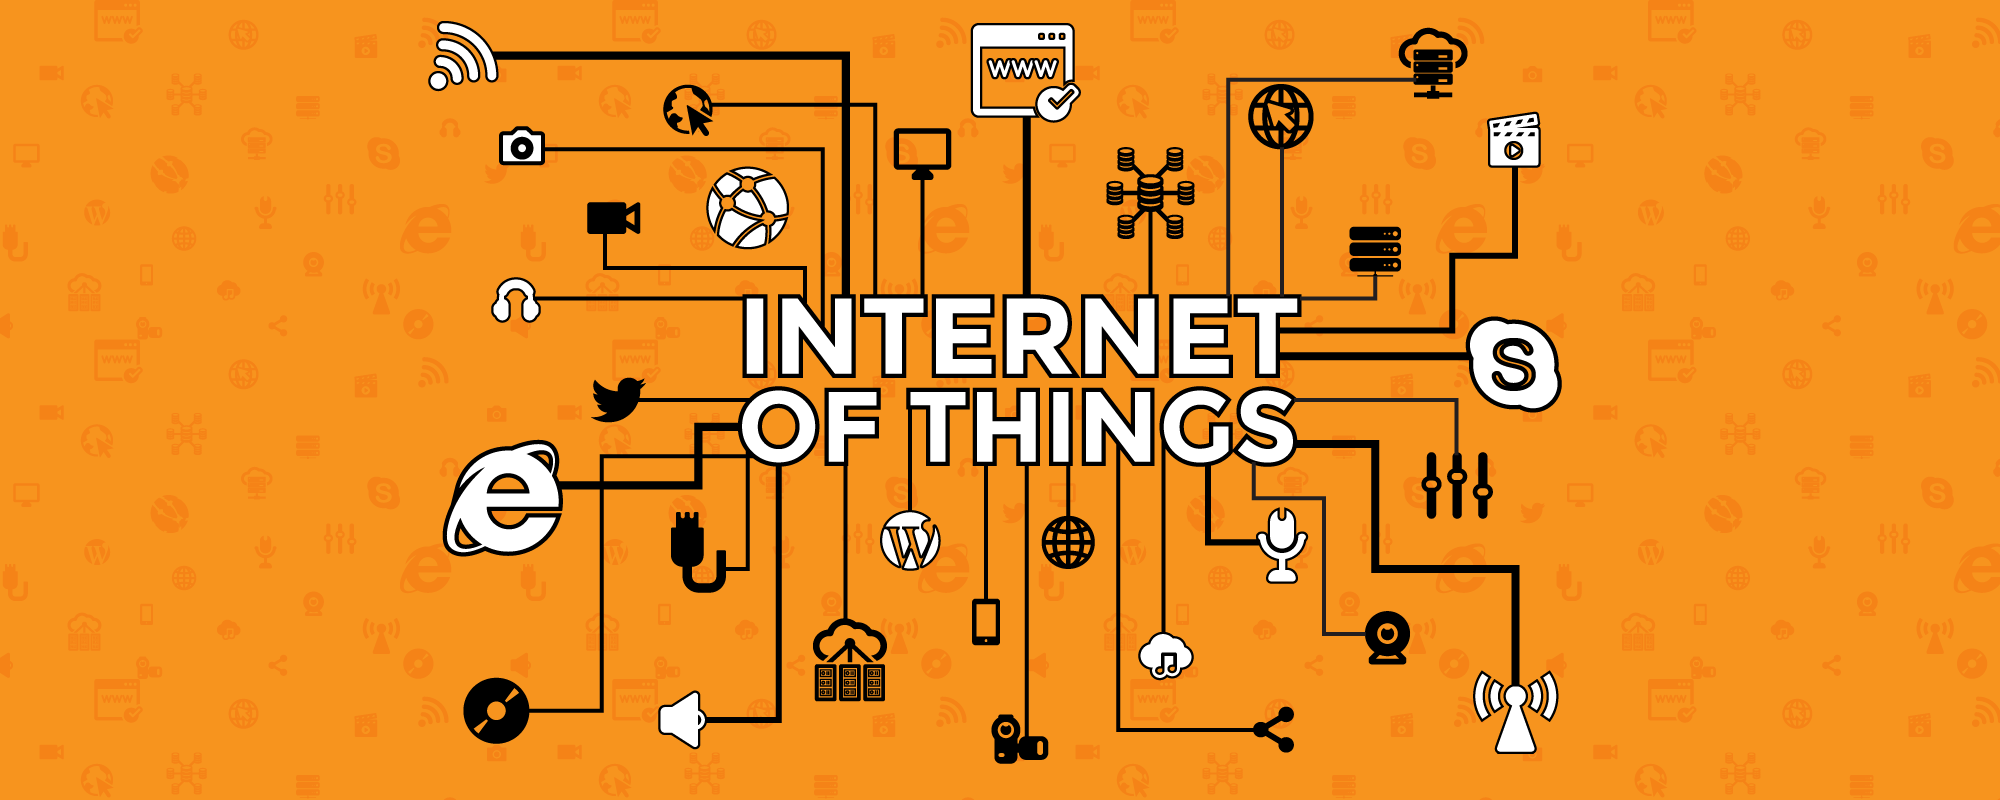 Myths and Reality that surround Internet of Things (IoT)